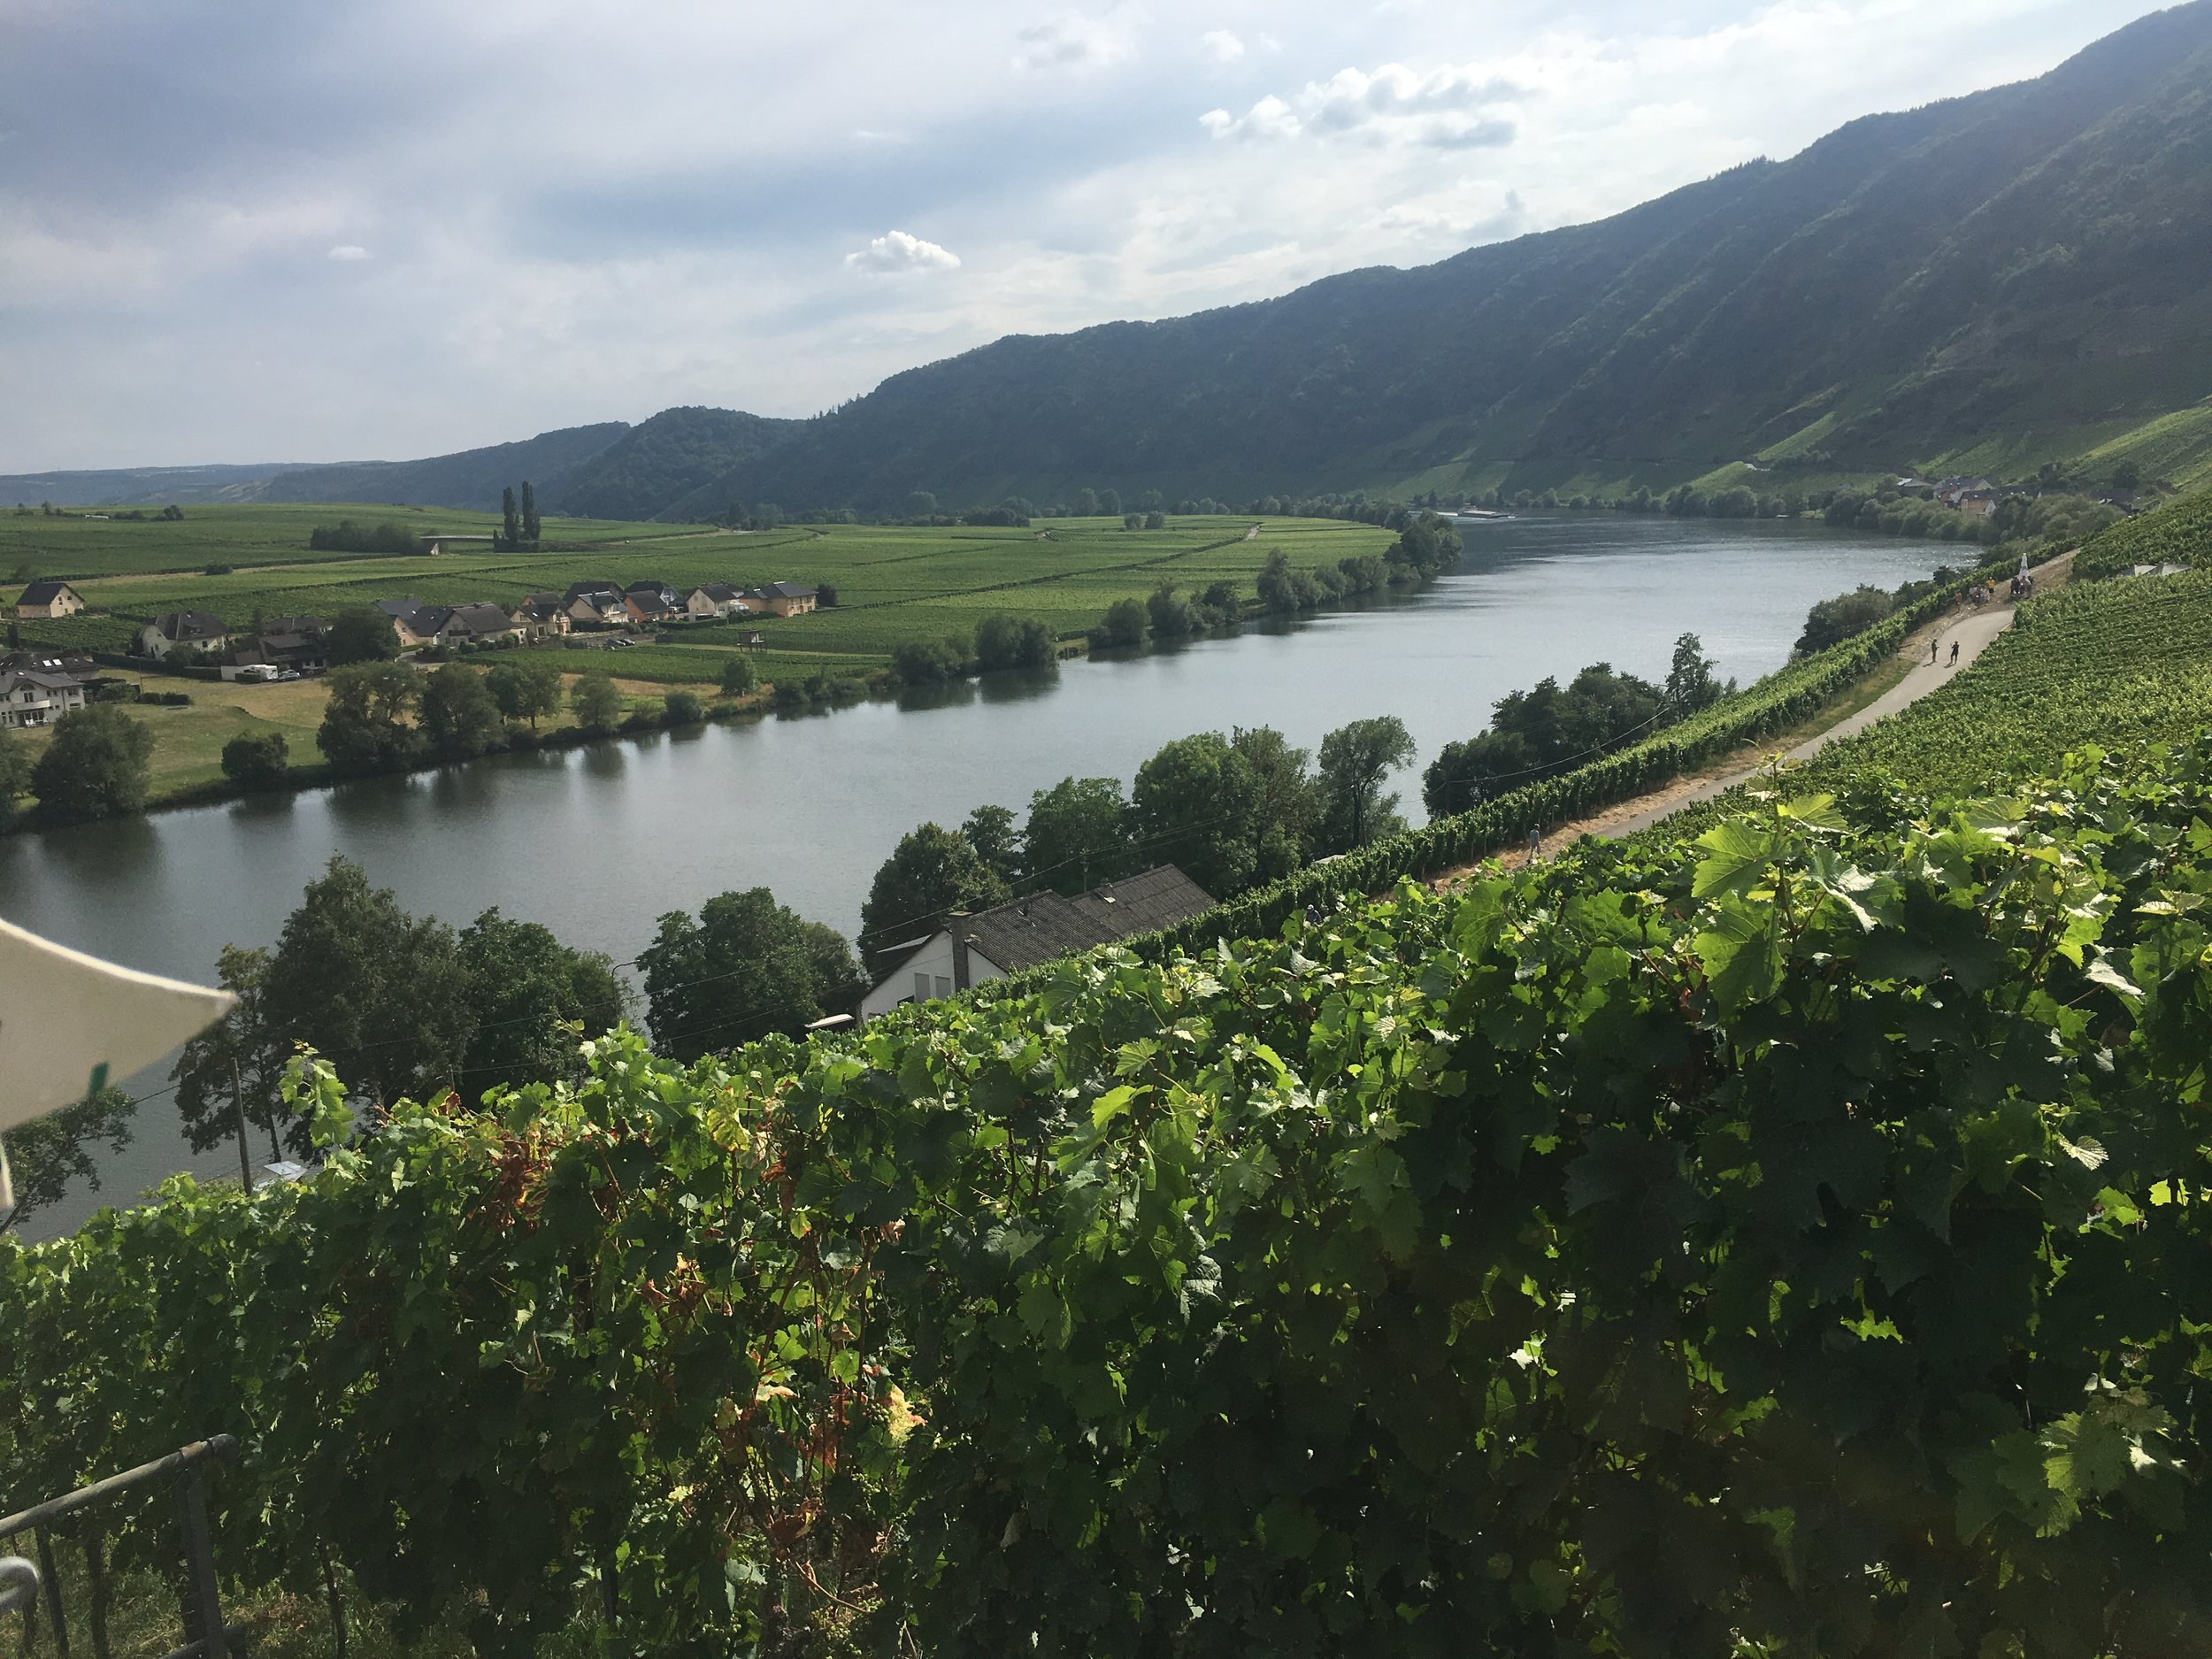 In the vineyards of piesport